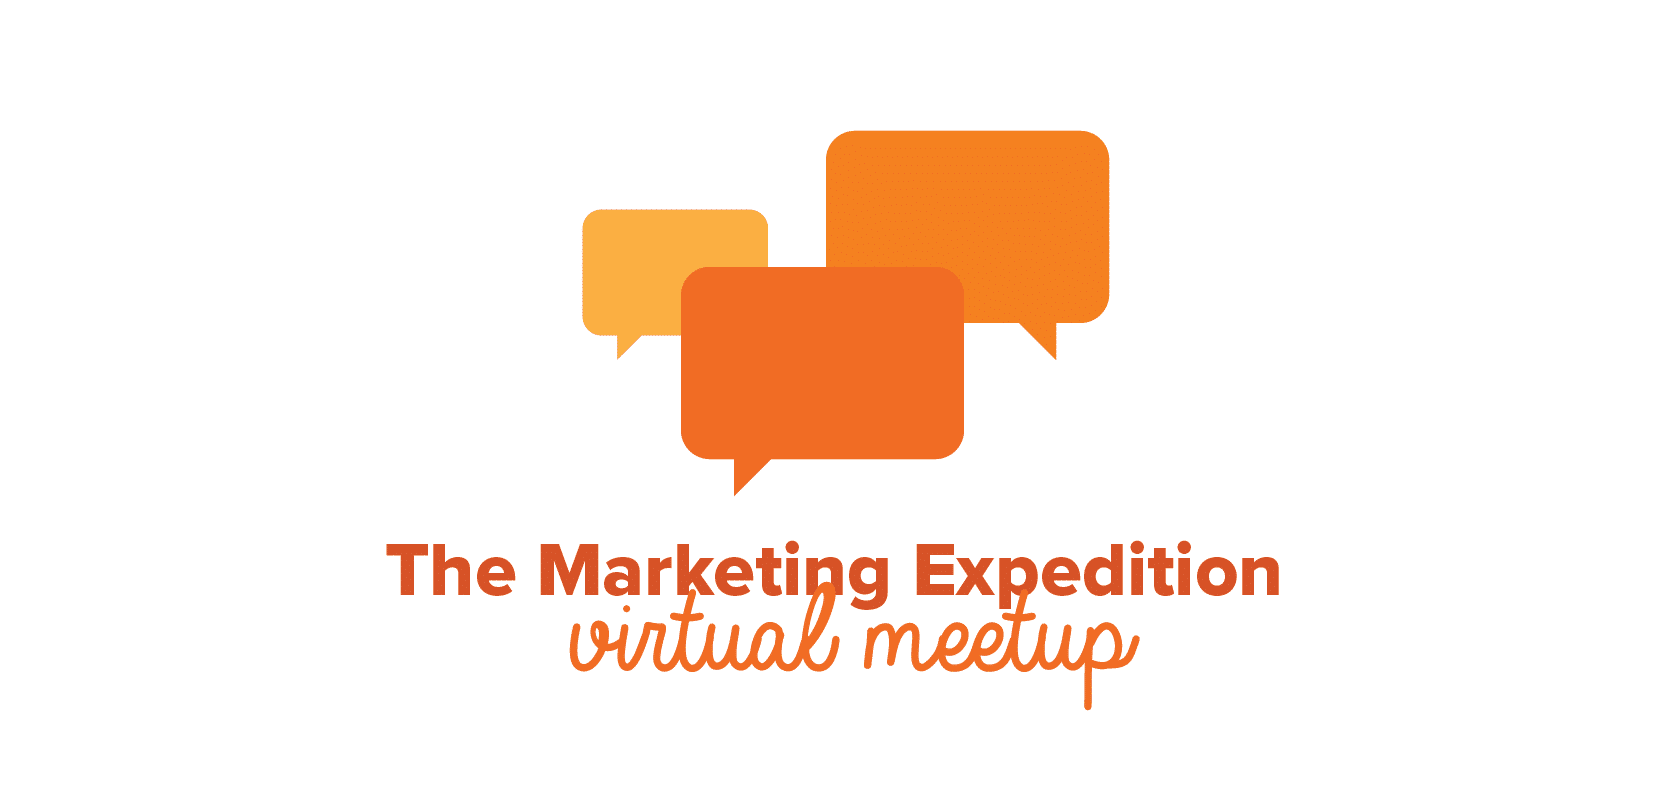 The Marketing Expedition Community Virtual Meetup